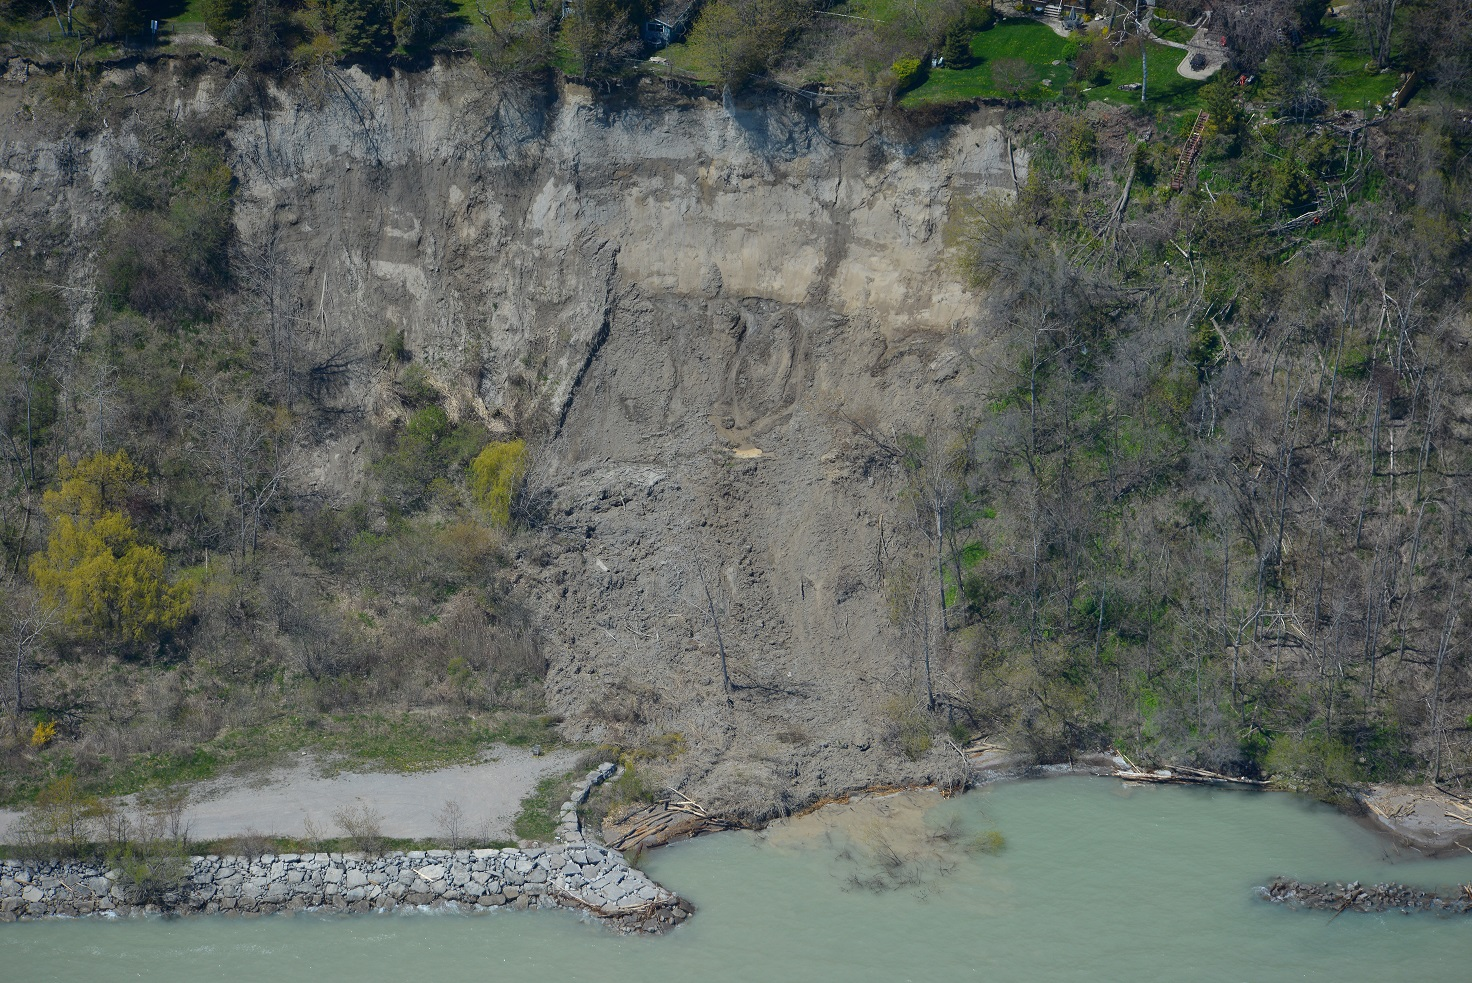 This image was taken from a helicopter and shows a landslide that has settled near the base of a very tall section of the Scarborough Bluffs. At the bottom of the photo, Lake Ontario is visibly turbid due to soil from the landslide being washed into the water. At the bottom left of the image is an dirt access road behind a shoreline revetment structure constructed of large 5 tonne armourstone blocks. The face of the bluff on either side of the slope failure is vegetated with shrubs and trees.